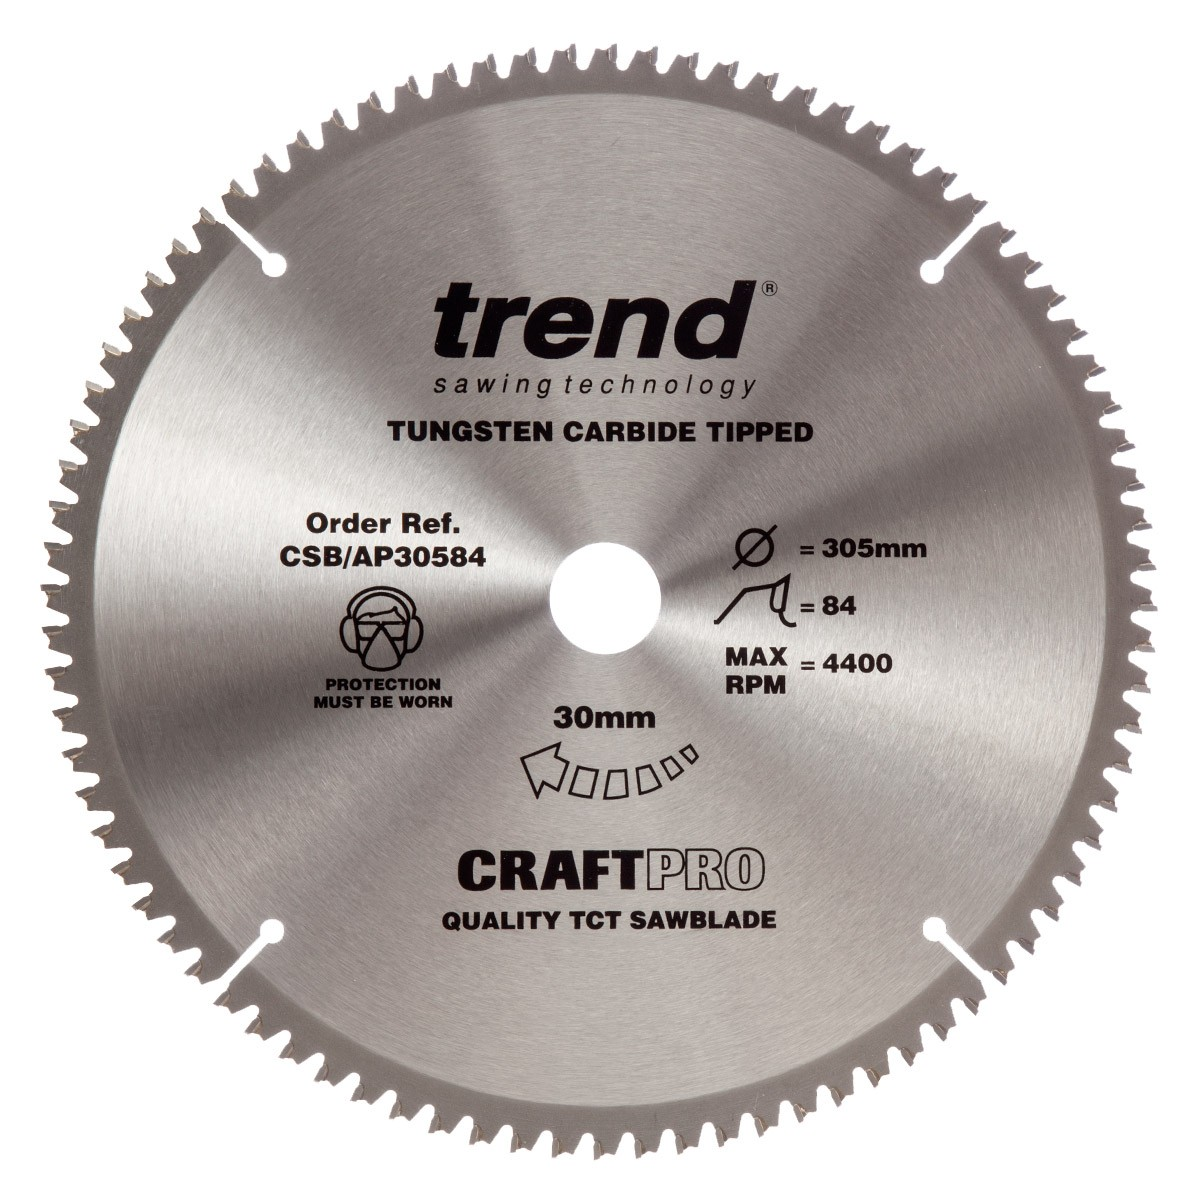 Trend CSB/AP30584 CraftPro Saw Blade Aluminium / Plastic 305mm x 84 Teeth x 30mm